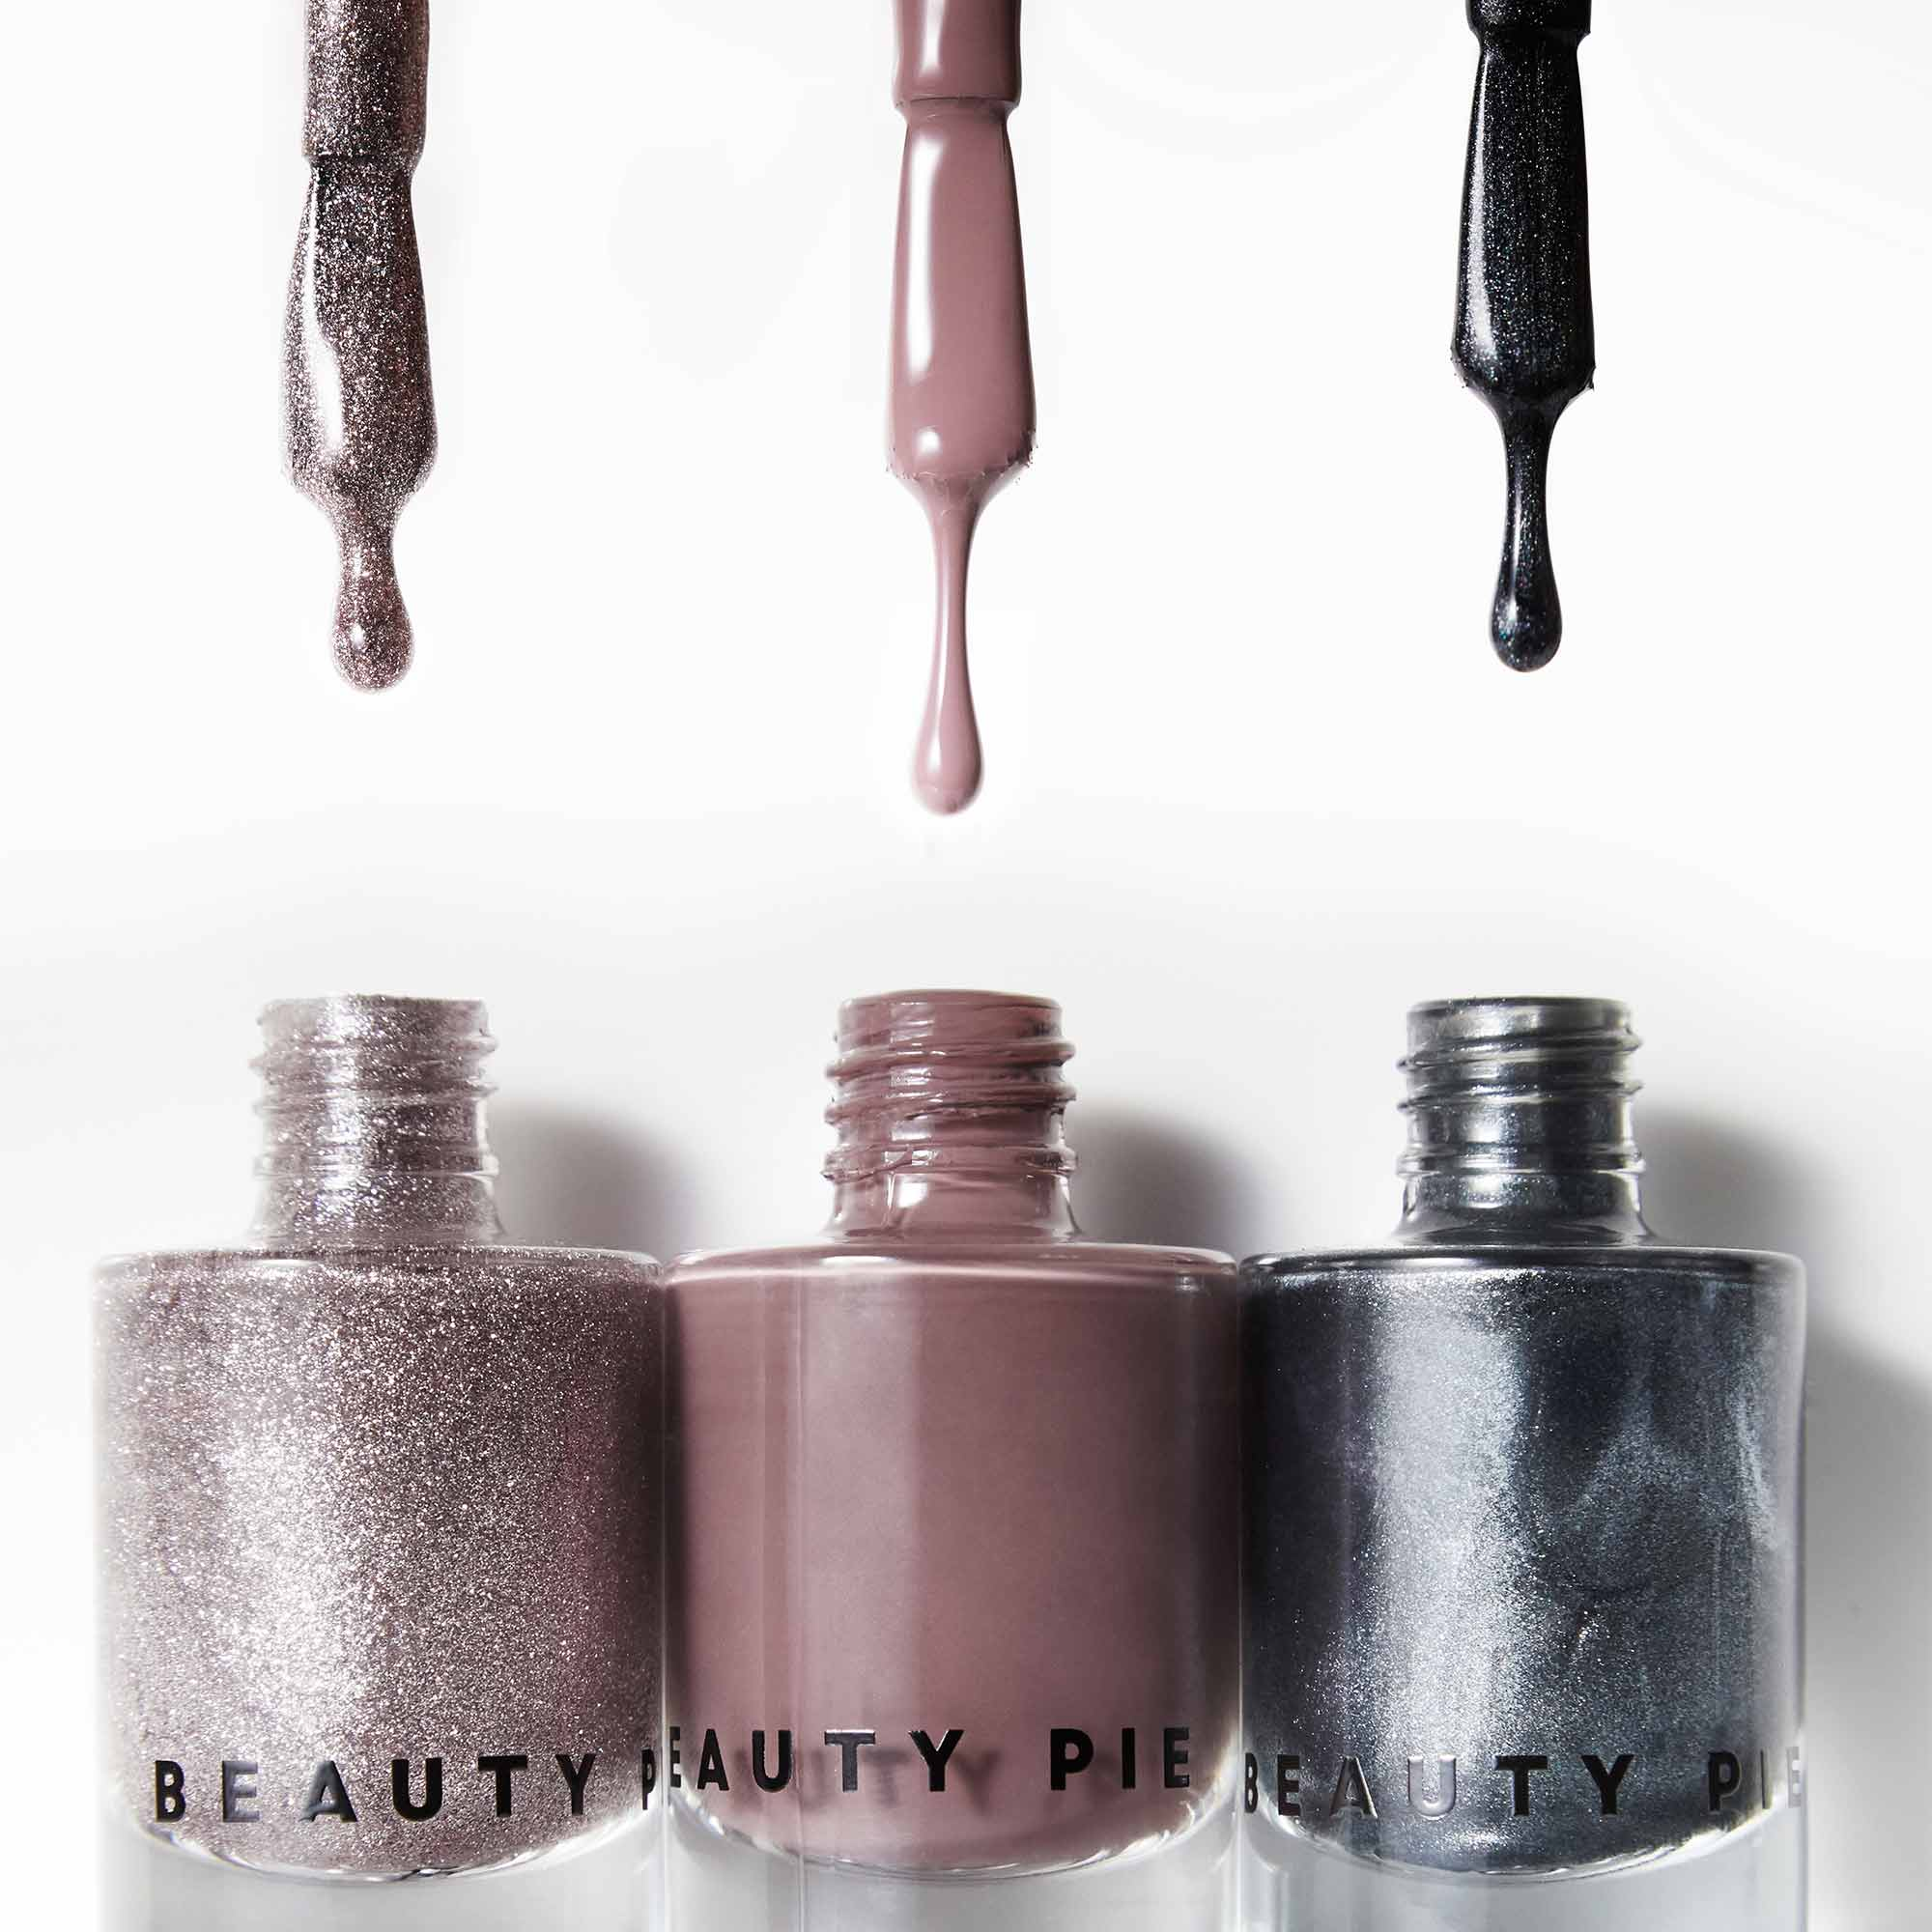 Wondercolour™ Nail Polish in Amulet by Beauty Pie